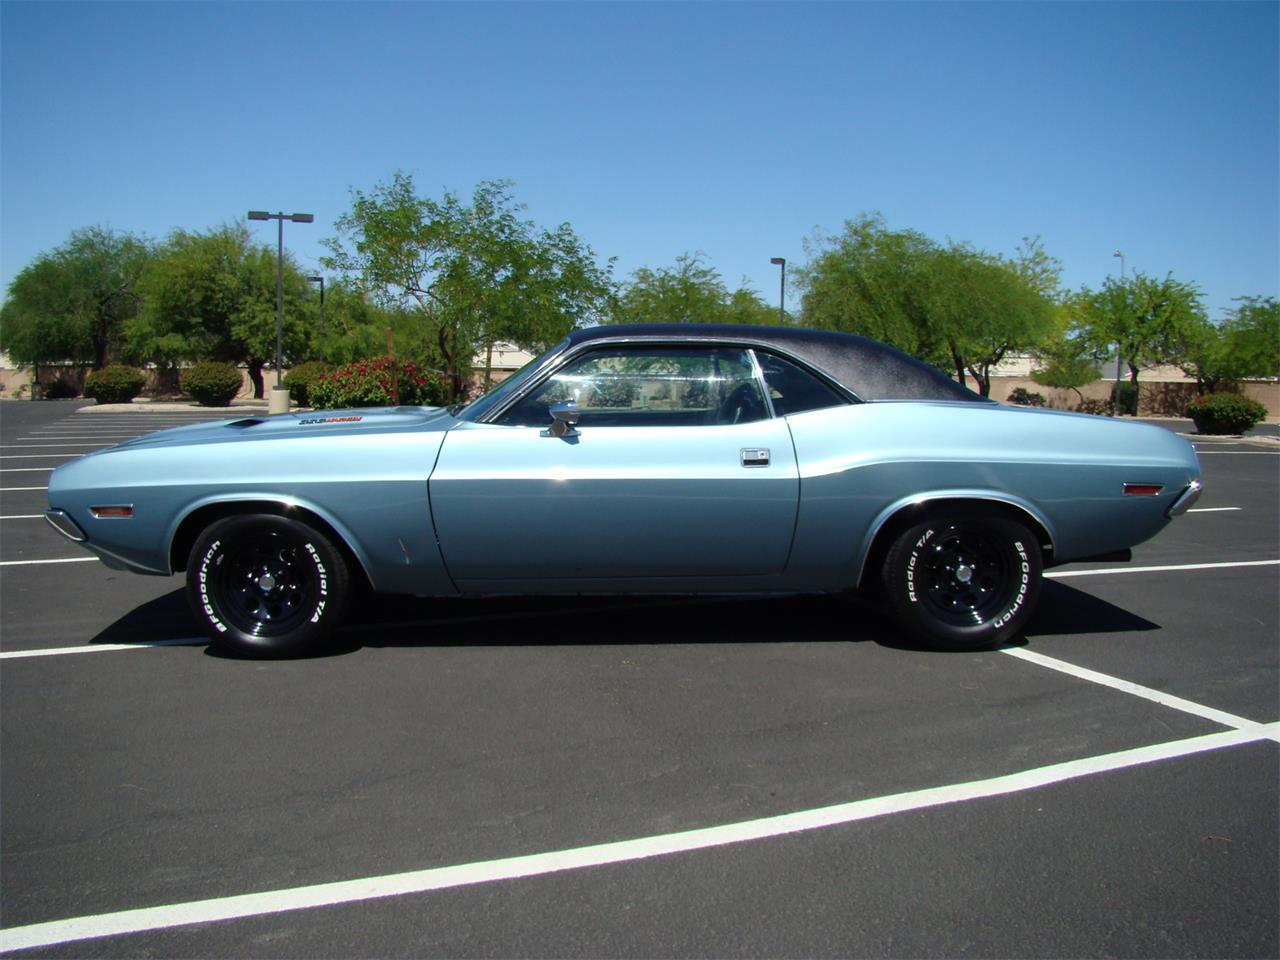 Large Picture of '70 Dodge Challenger located in Phoenix Arizona - $20,000.00 Offered by a Private Seller - M4T9